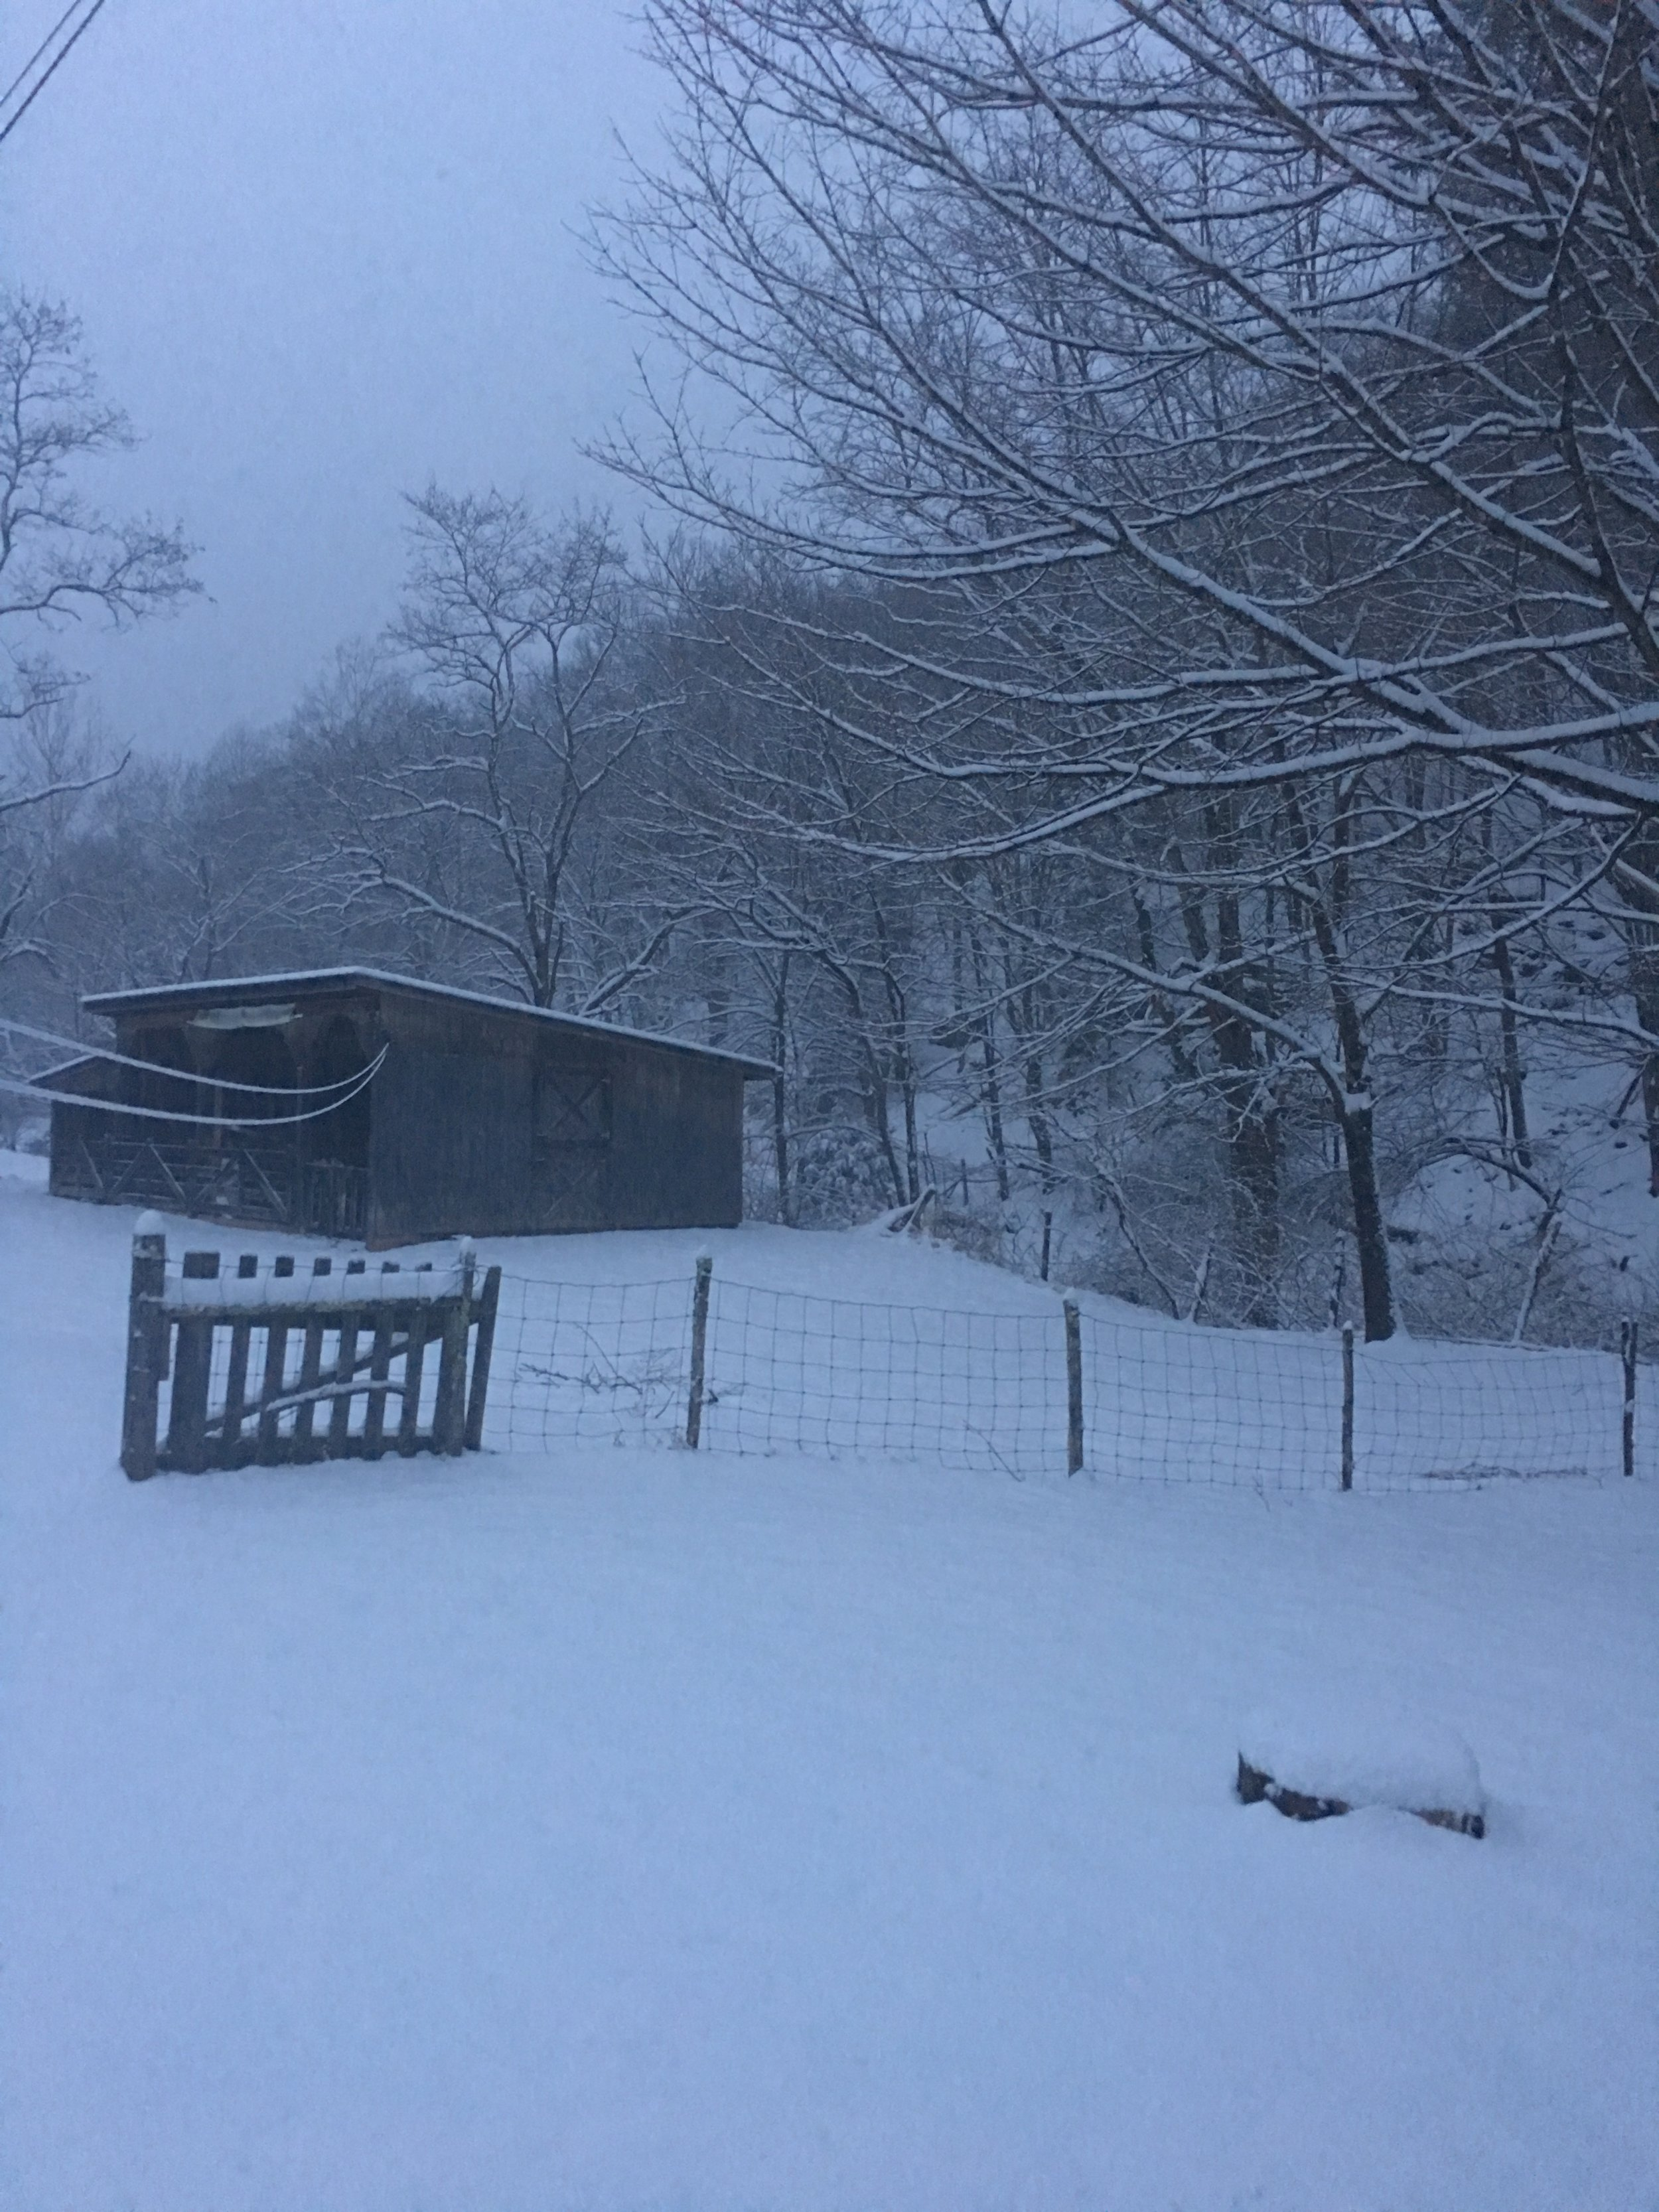 The lambing shed - and the snow has just begun!